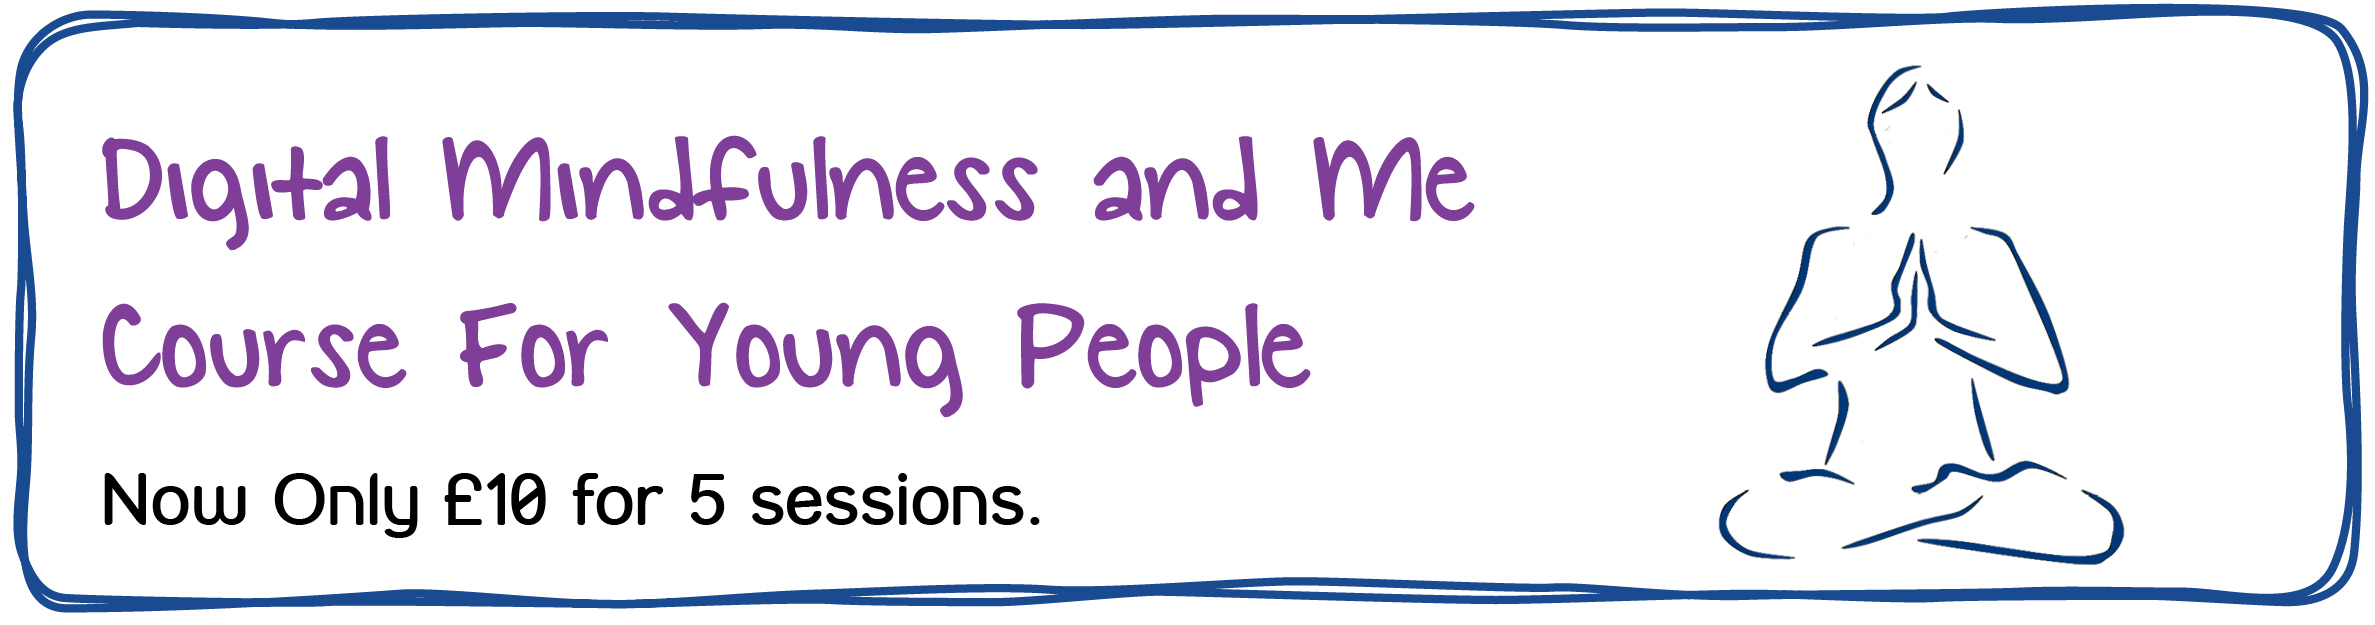 Digital Mindfulness and Me Course For Young People - Now Only £10 for 5 sessions.